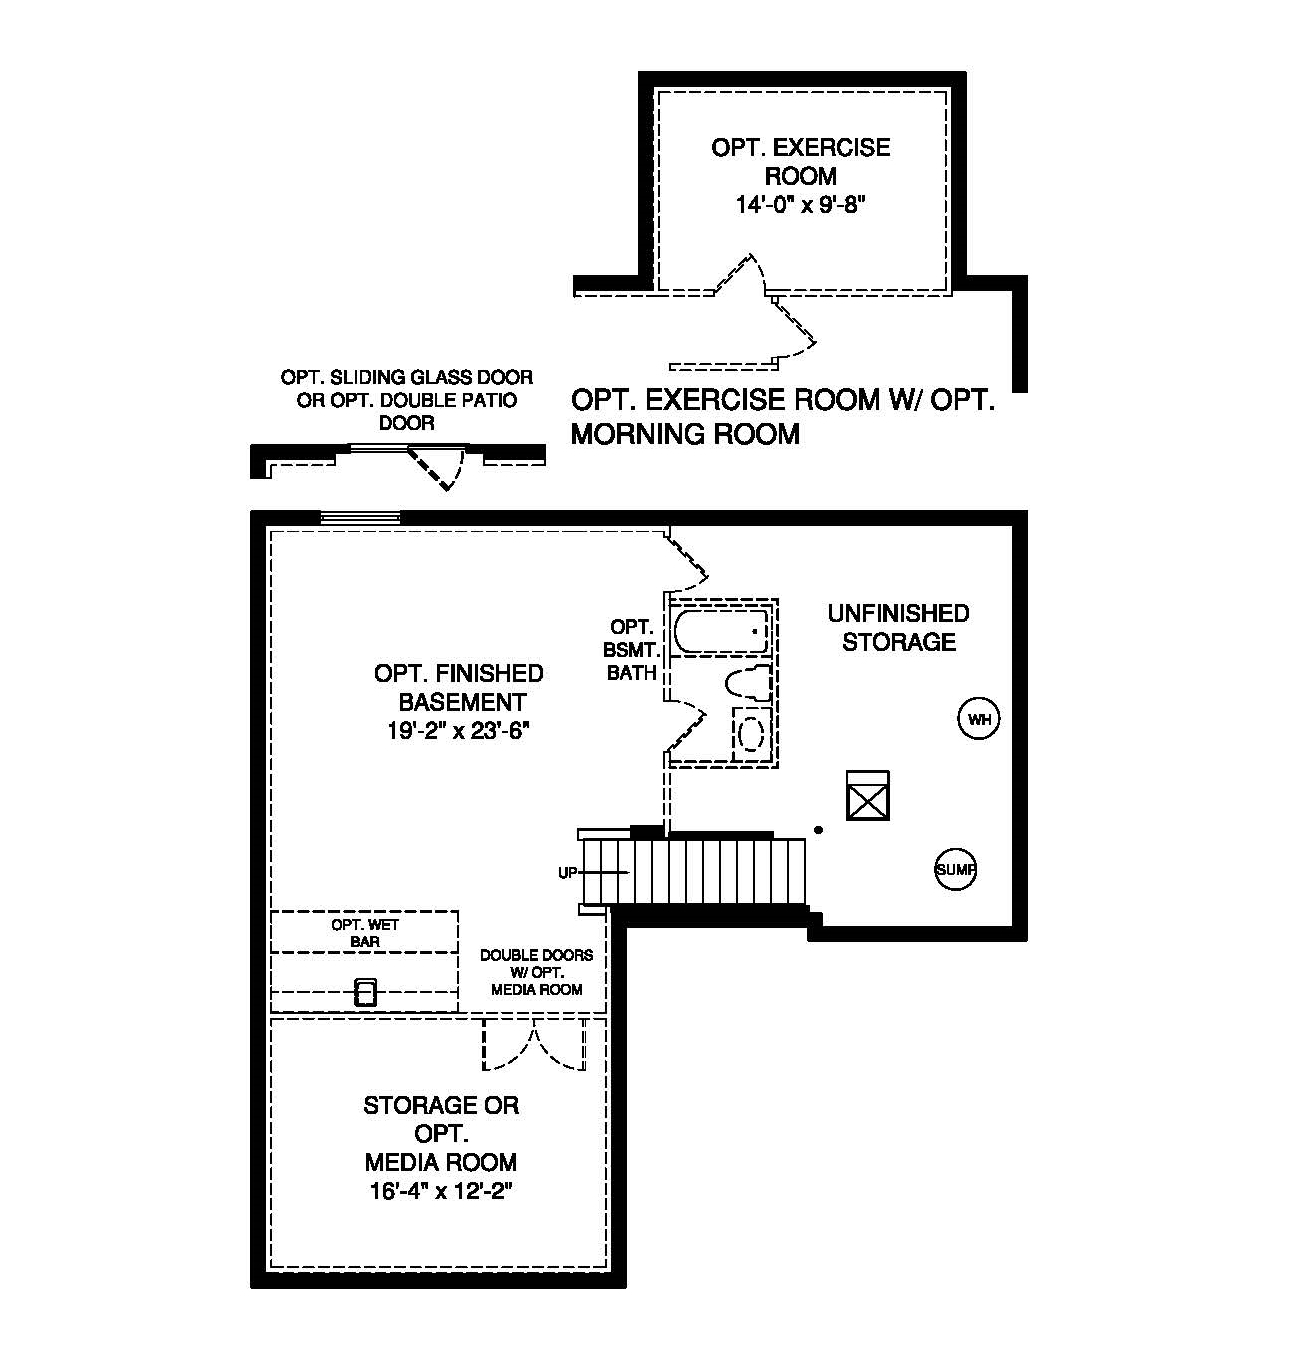 floor plans for homes with basements house design plans house plans with basements home design ideas